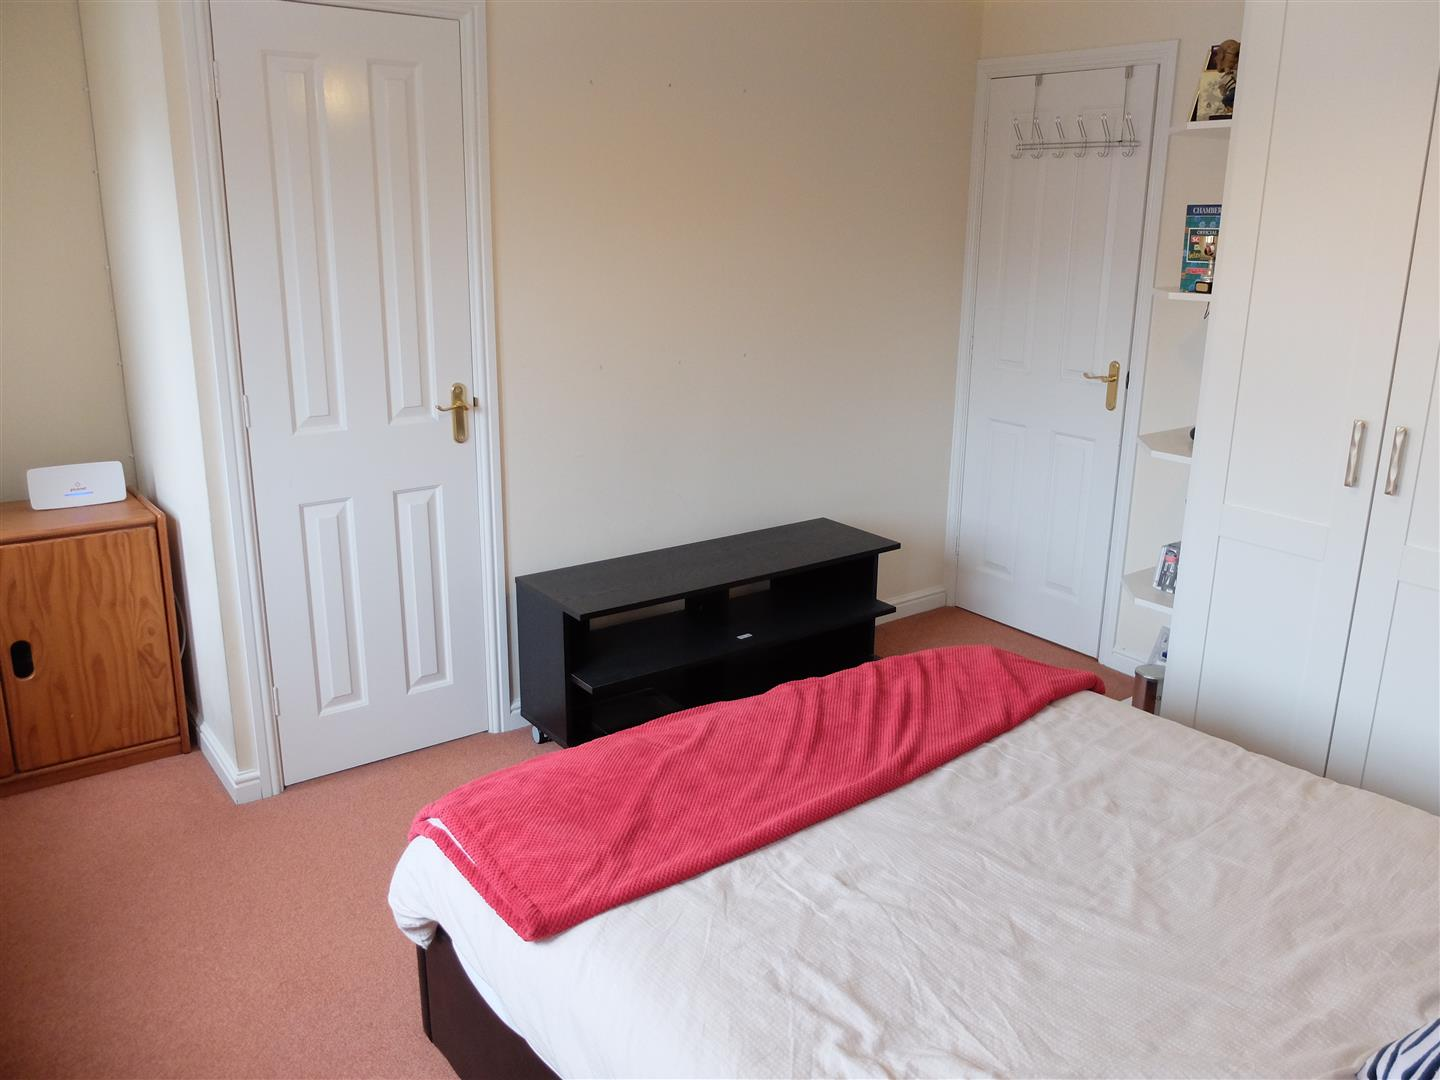 3 Bedrooms House - Detached On Sale 2 Longmans Close Carlisle 160,000